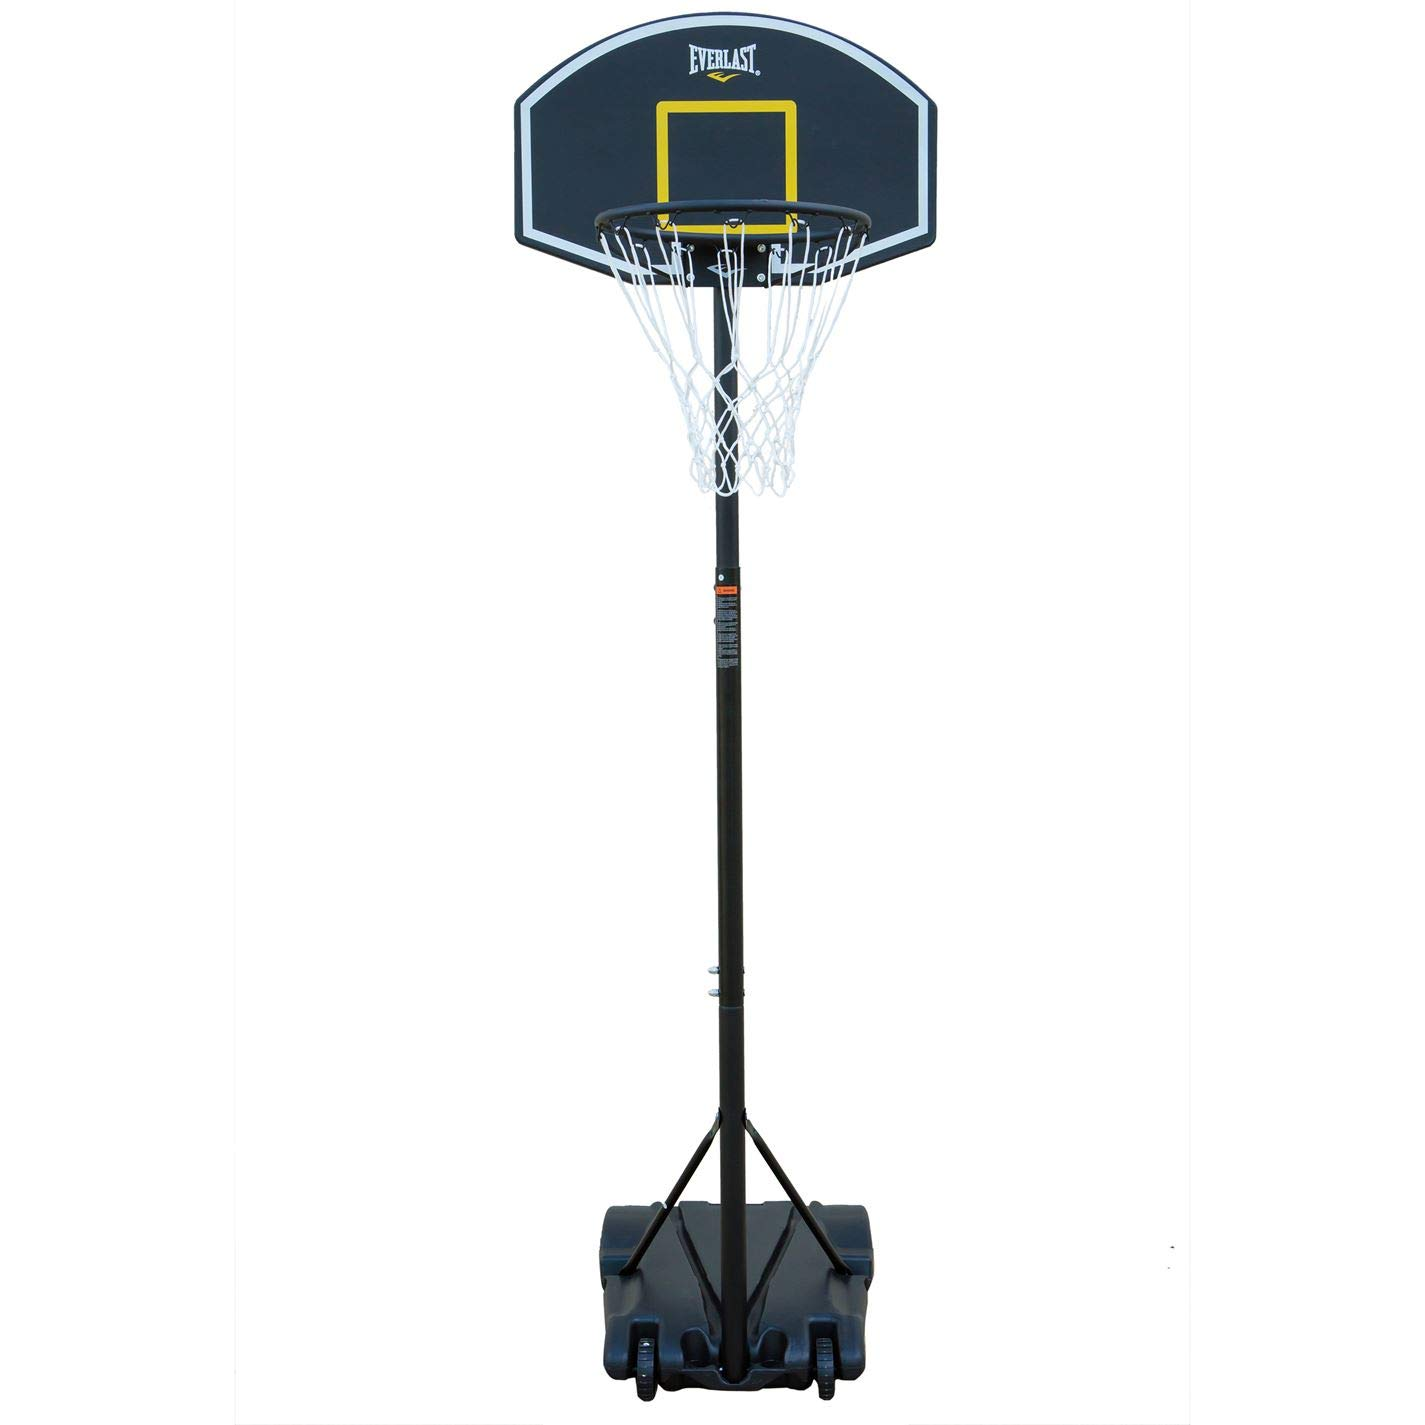 Everlast Unisex Basketballball Stand Basketball Boards Hoops Outdoor Black One Size